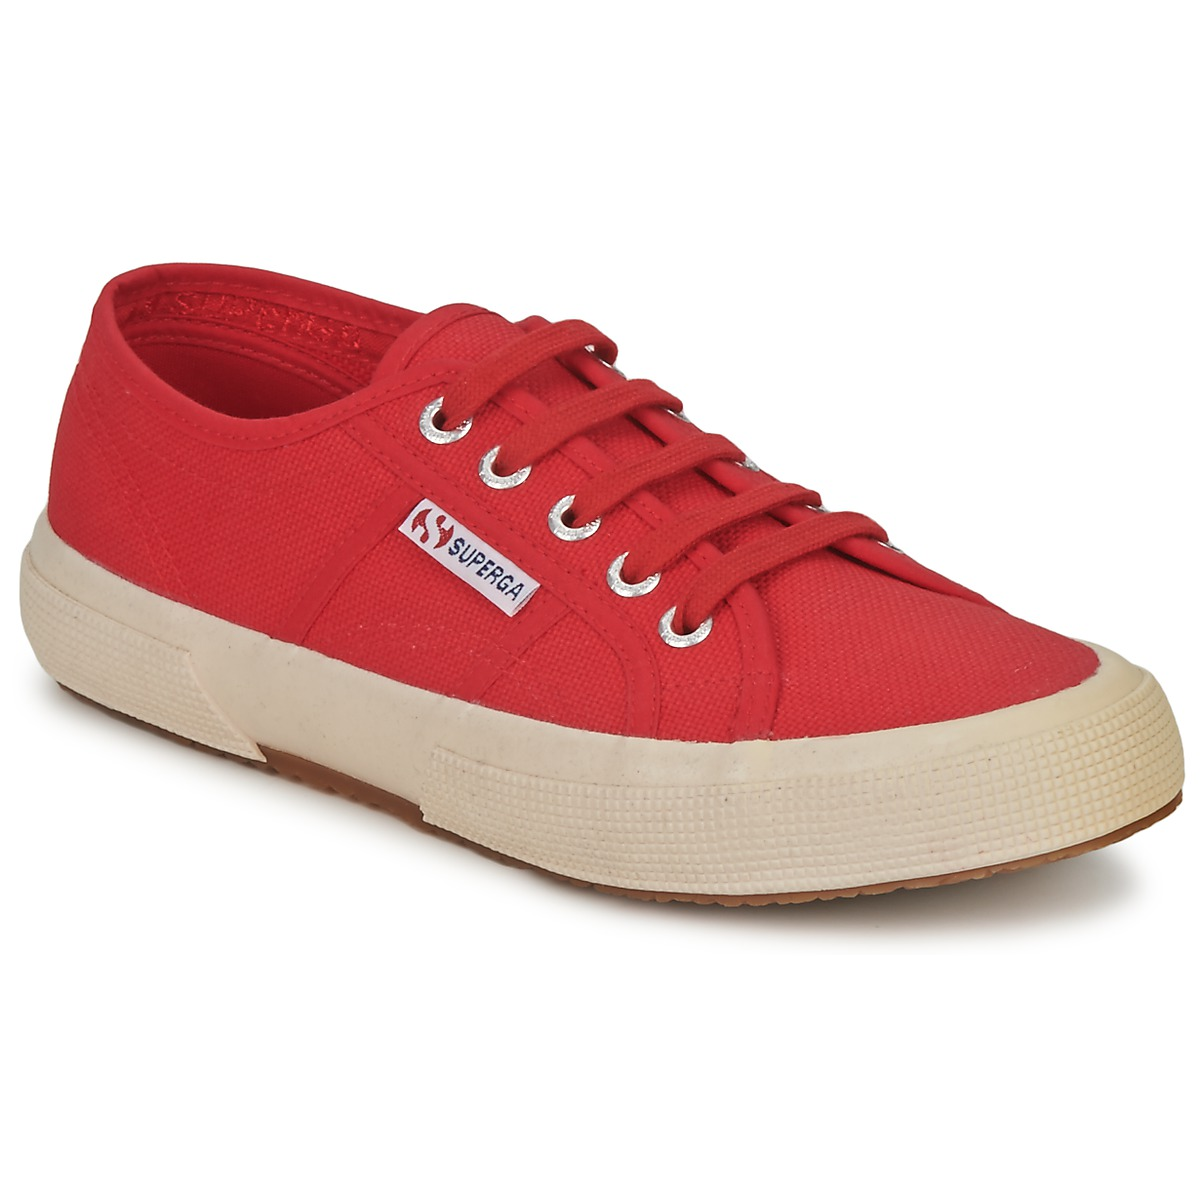 Superga S001W00-2750 Sneakers Unisex Rouge Rouge - Chaussures Baskets basses